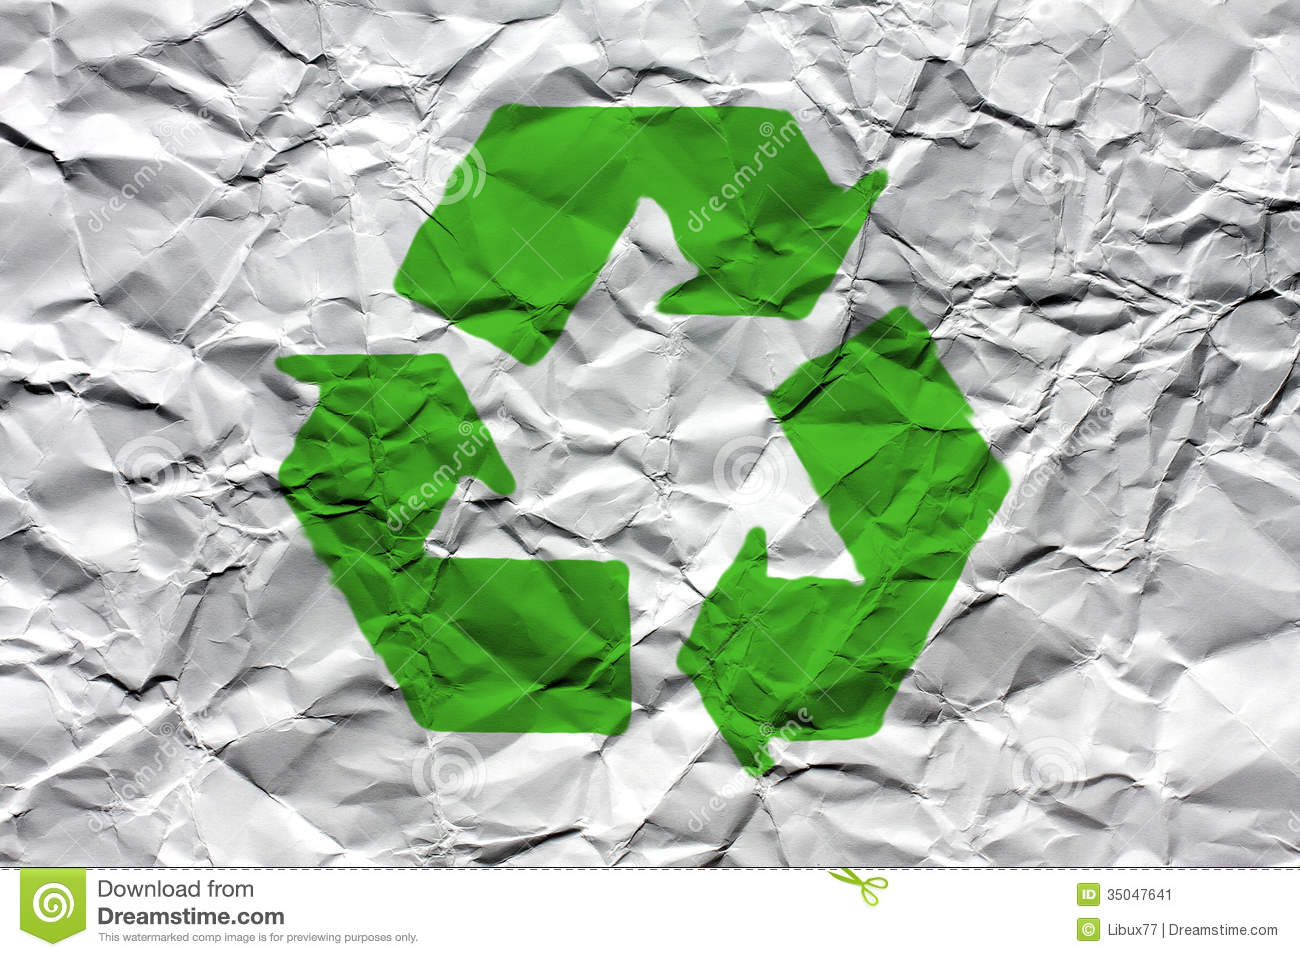 Essays on recycling and the environment